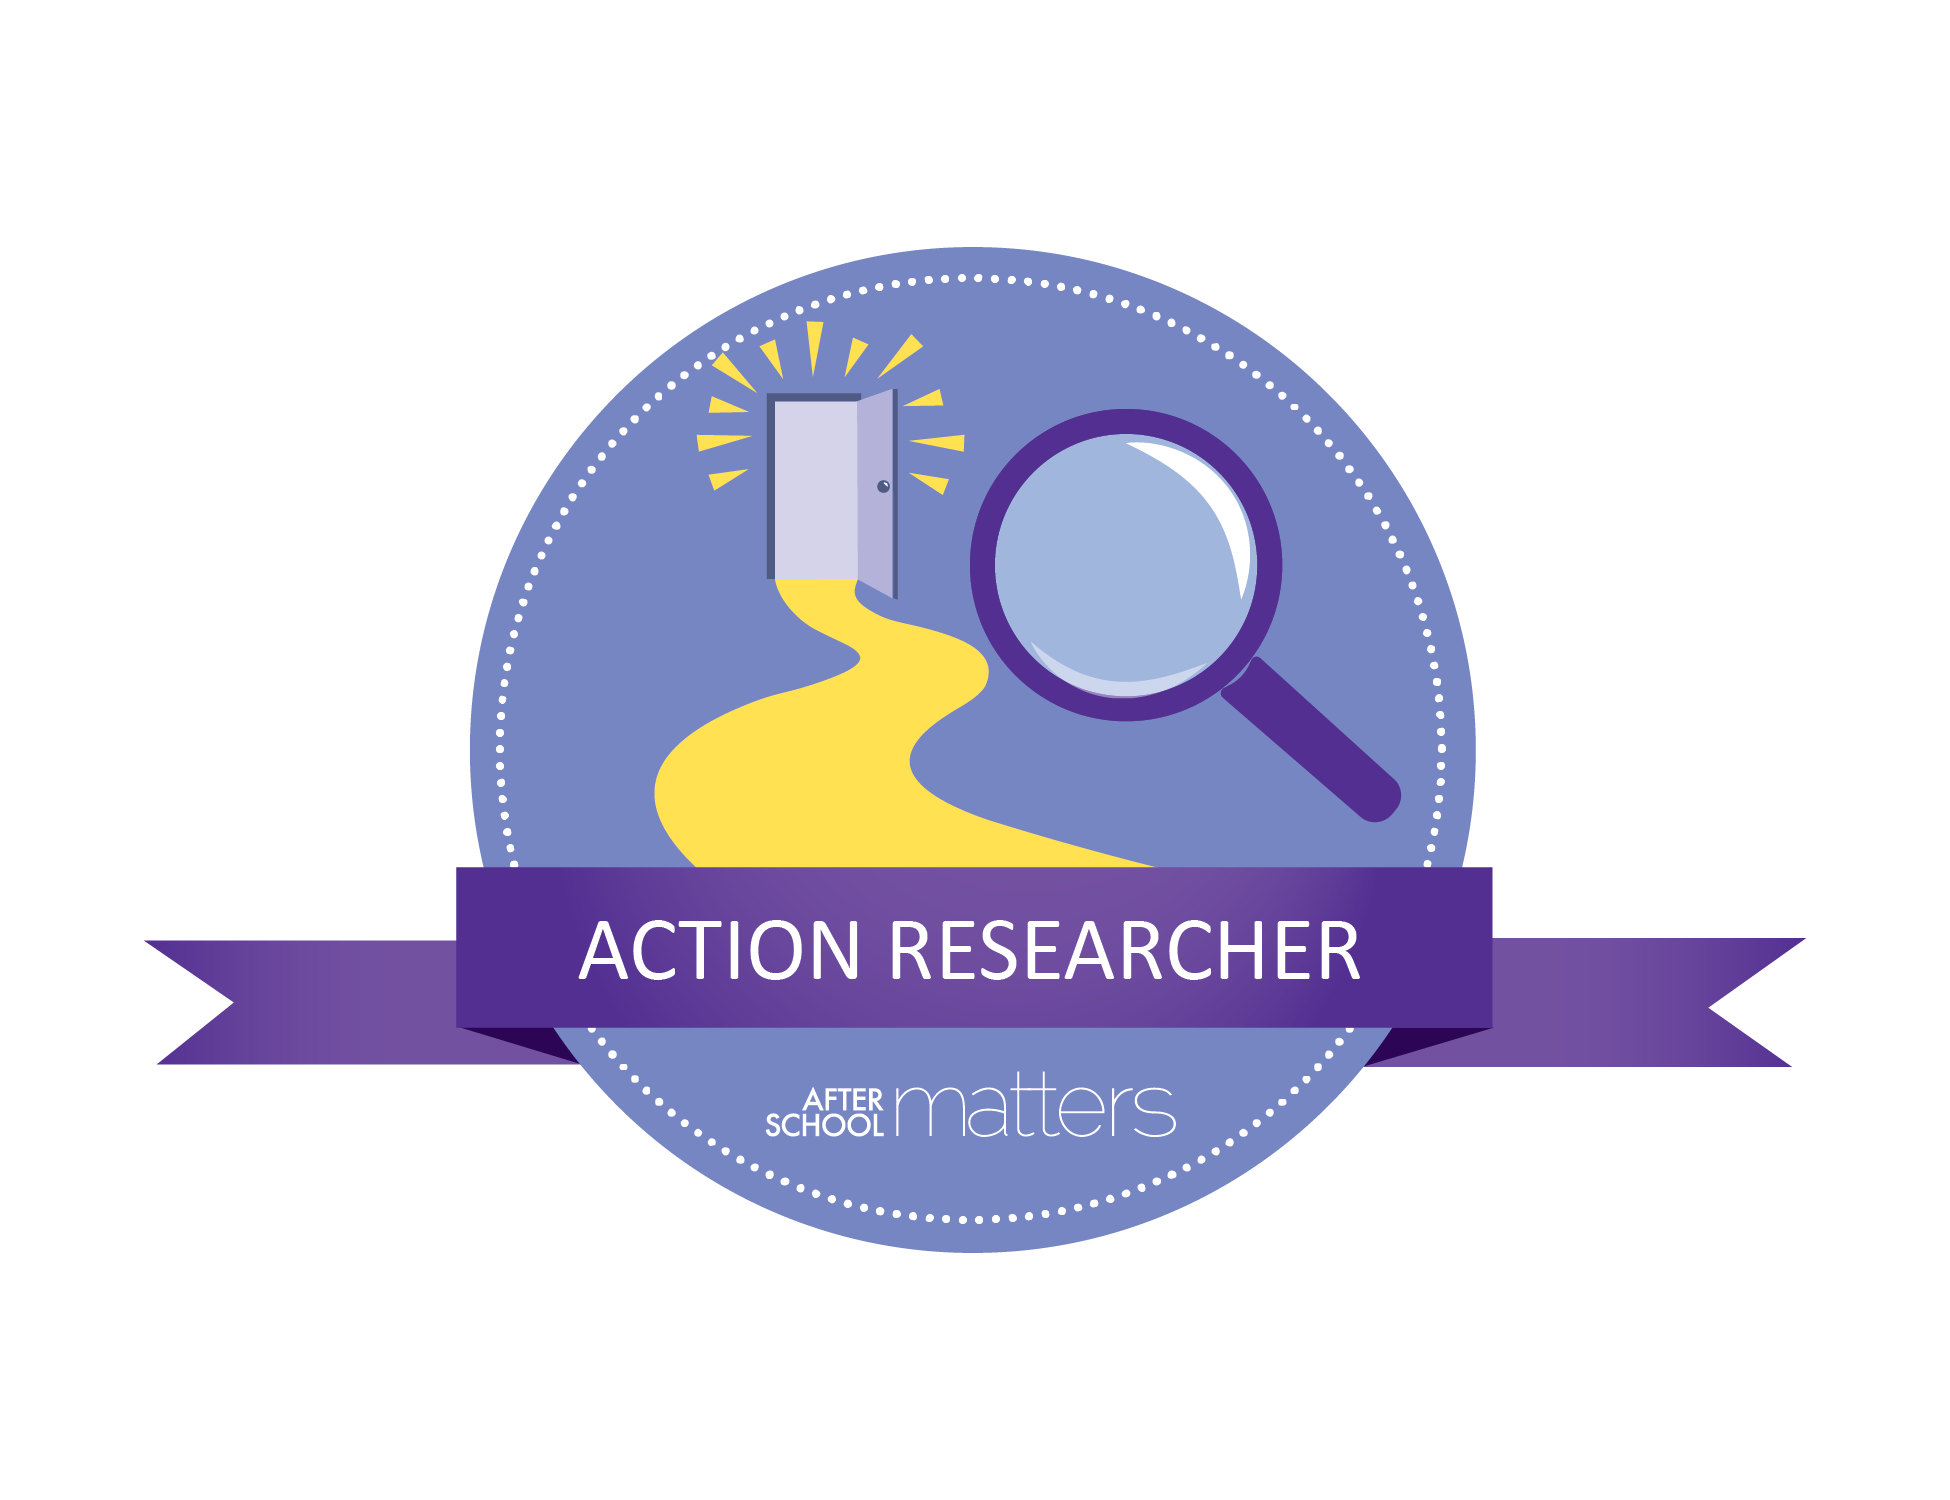 ASM Action Researcher